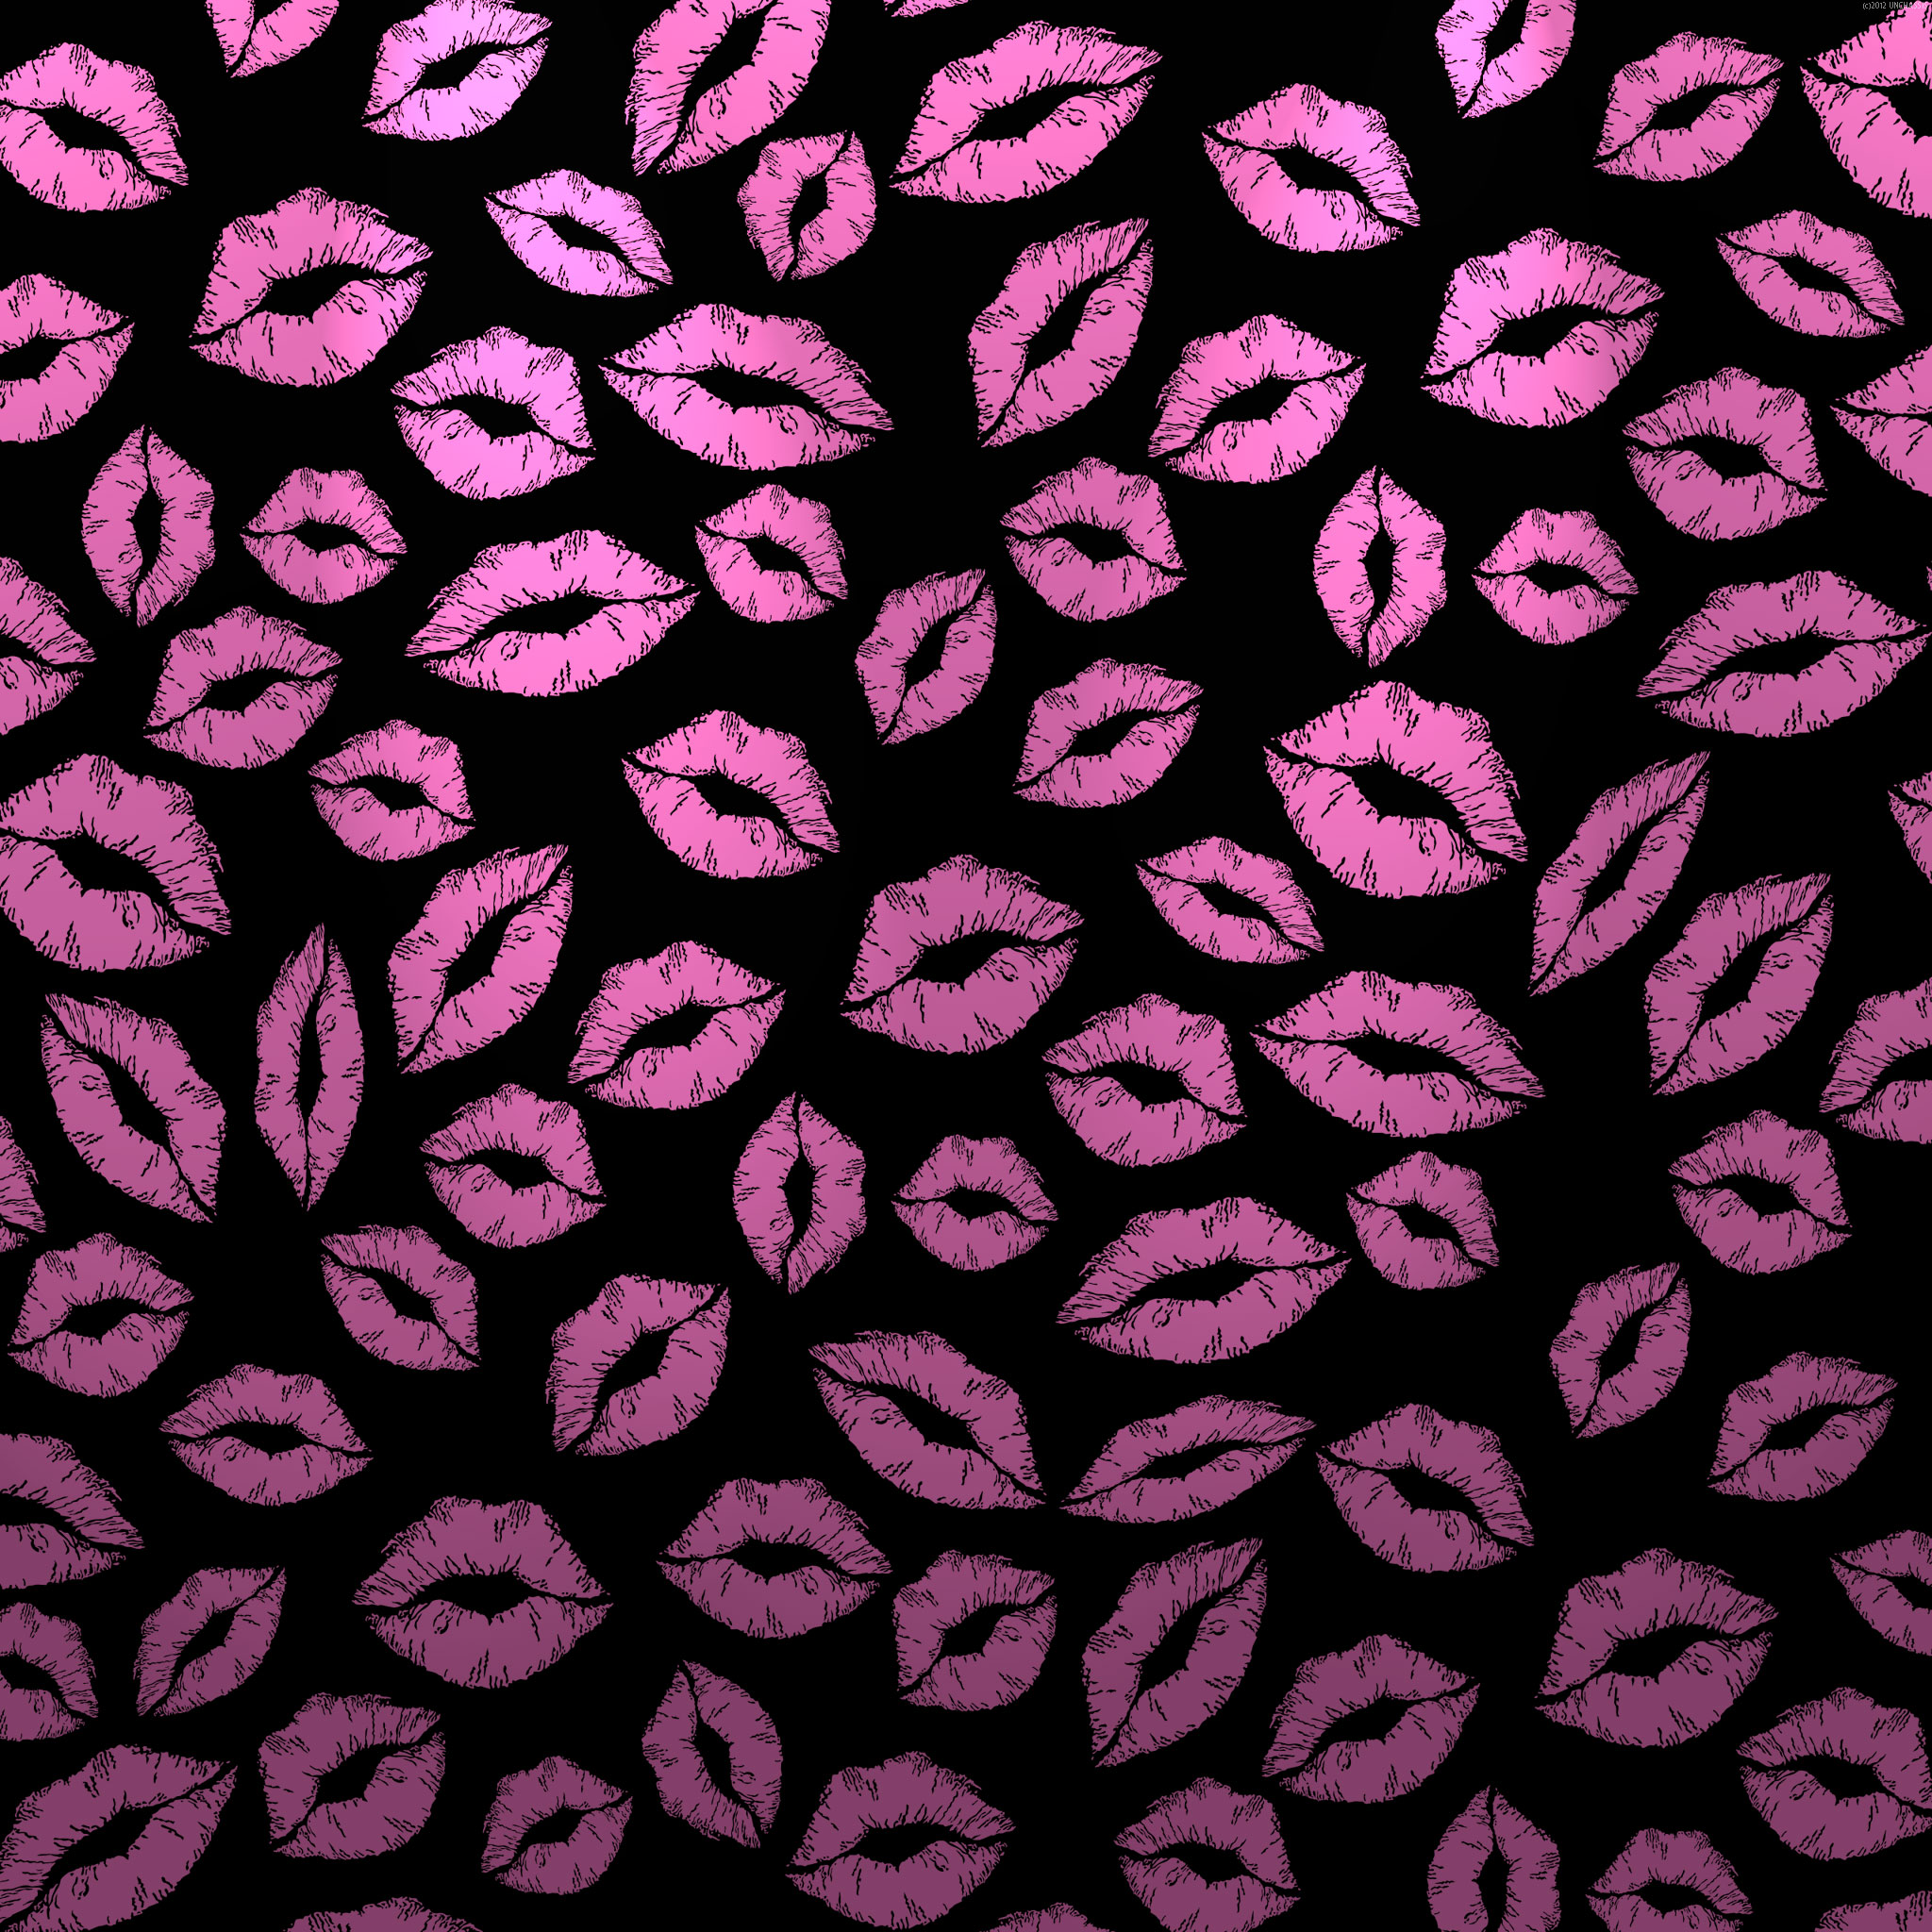 pink and black zebra print wallpaper hd pink and black zebra wallpaper 2048x2048